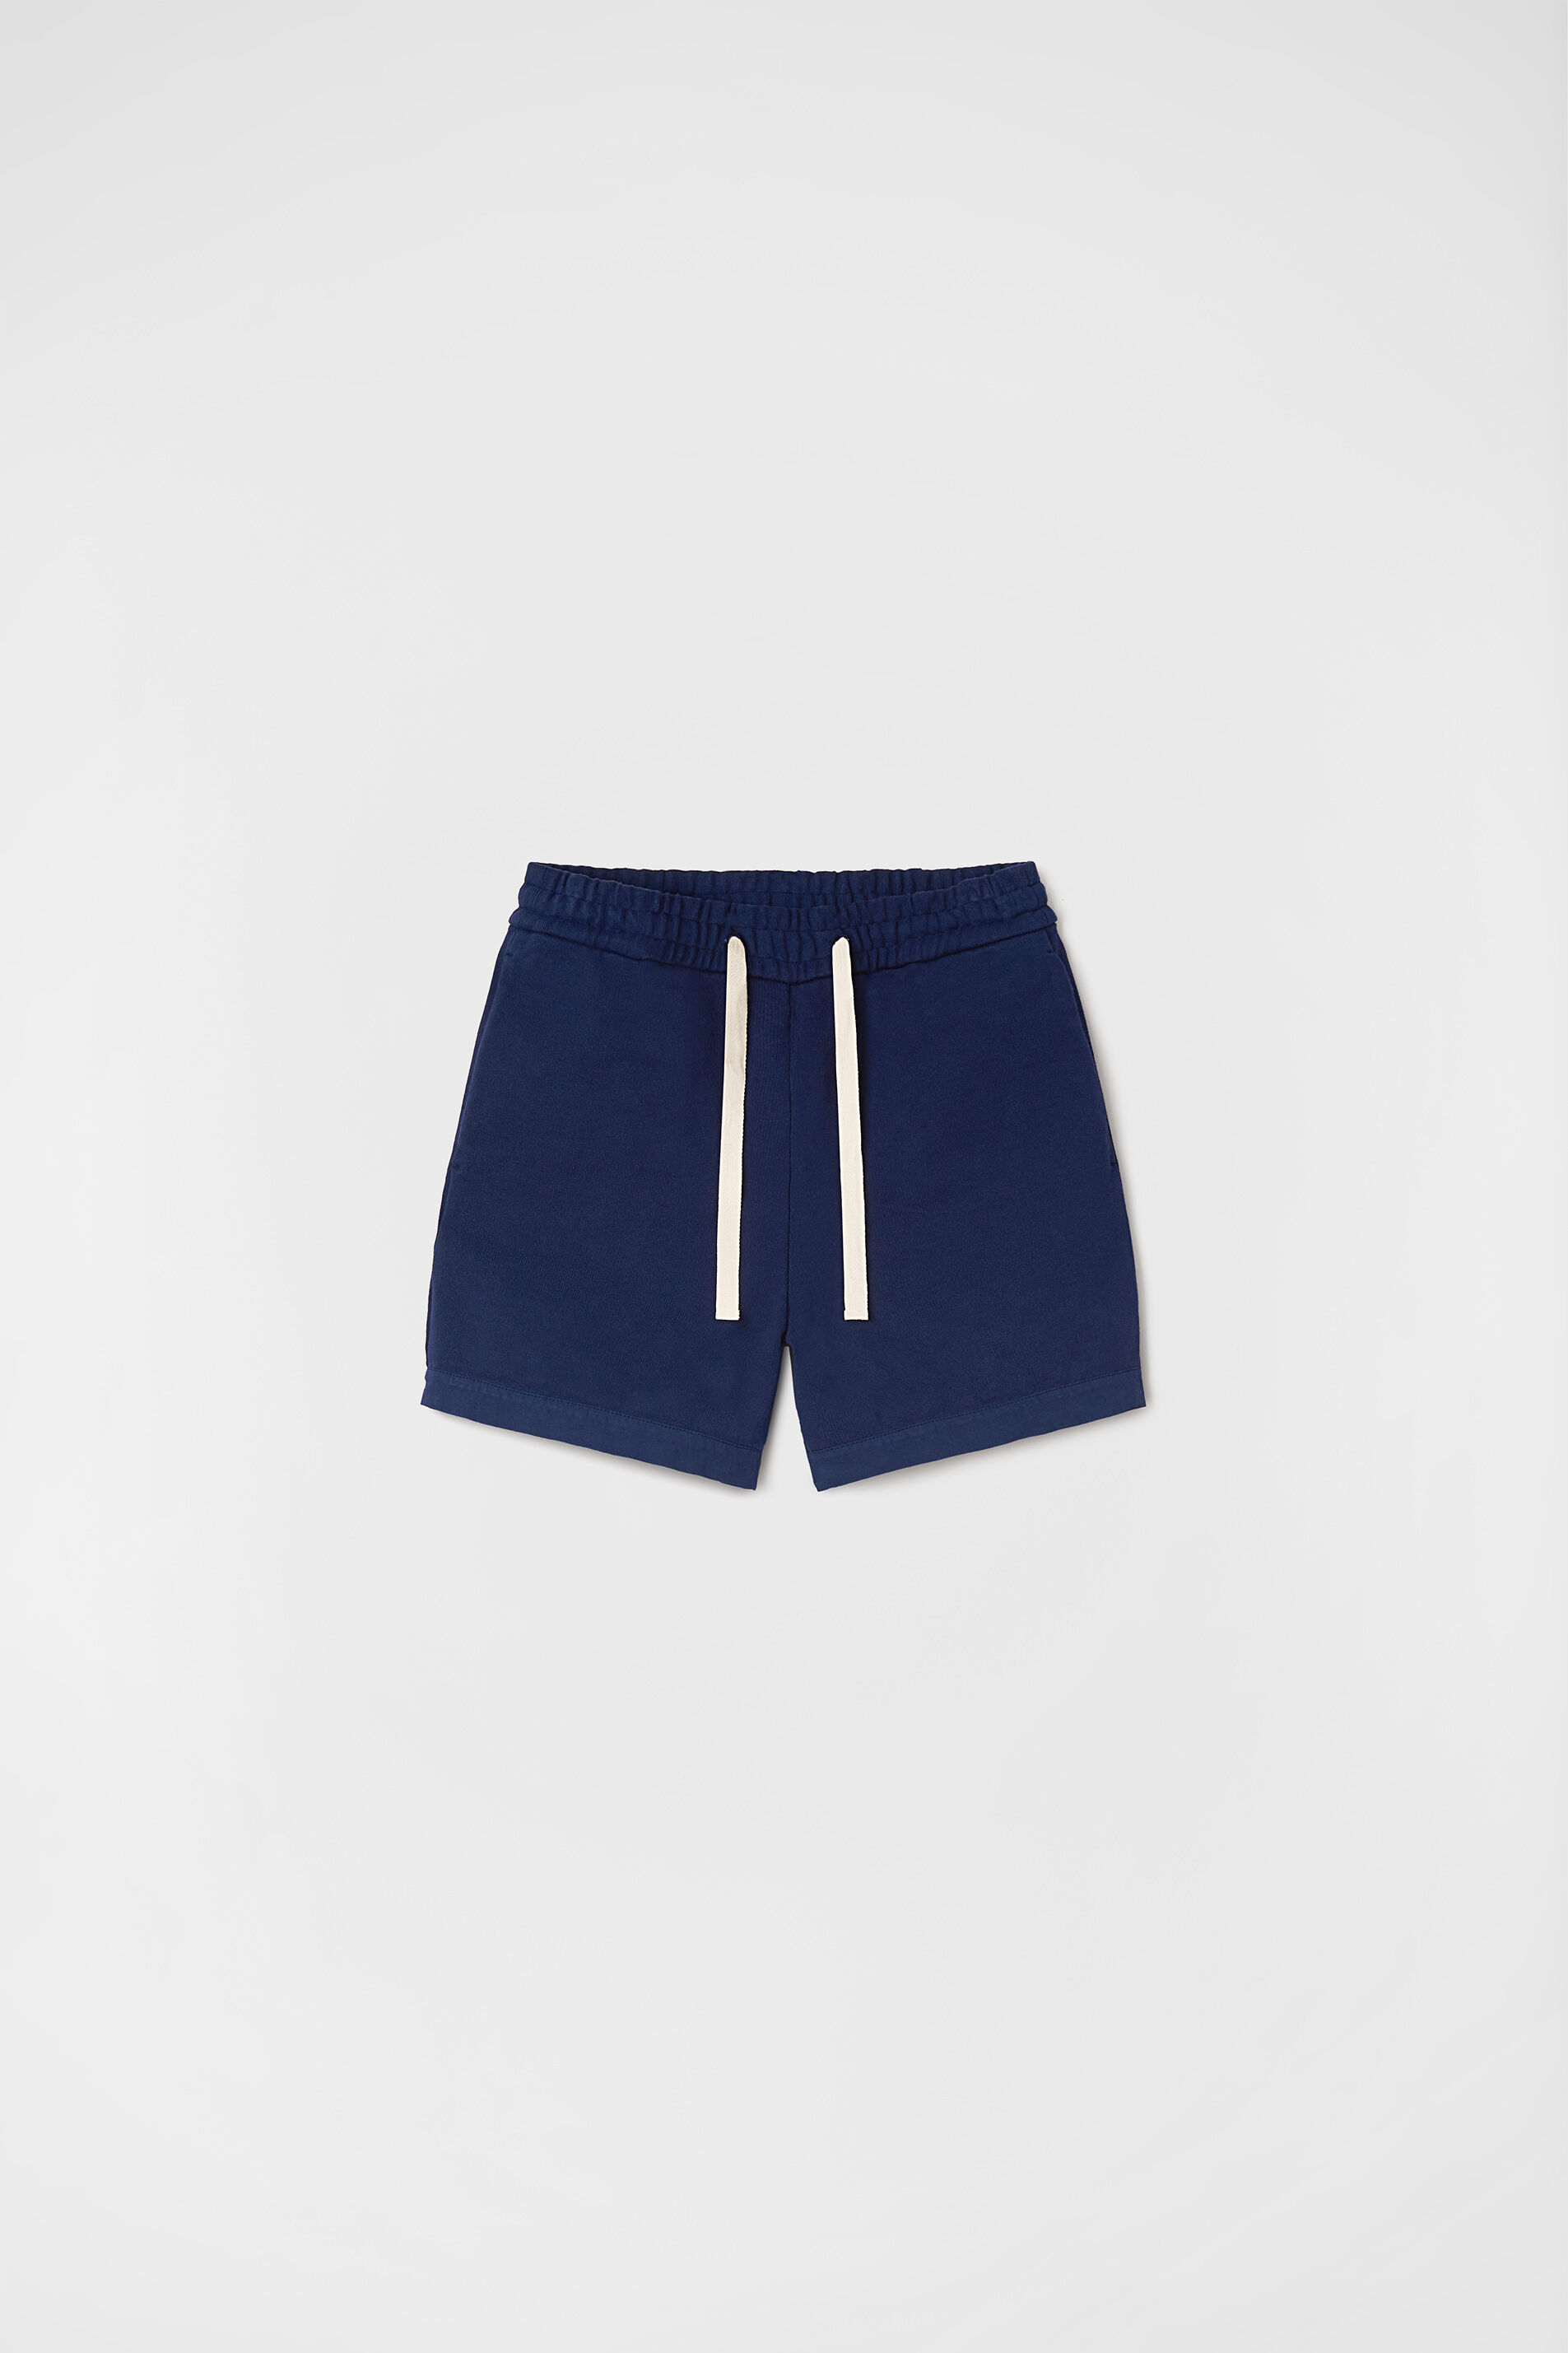 Shorts, blue, large